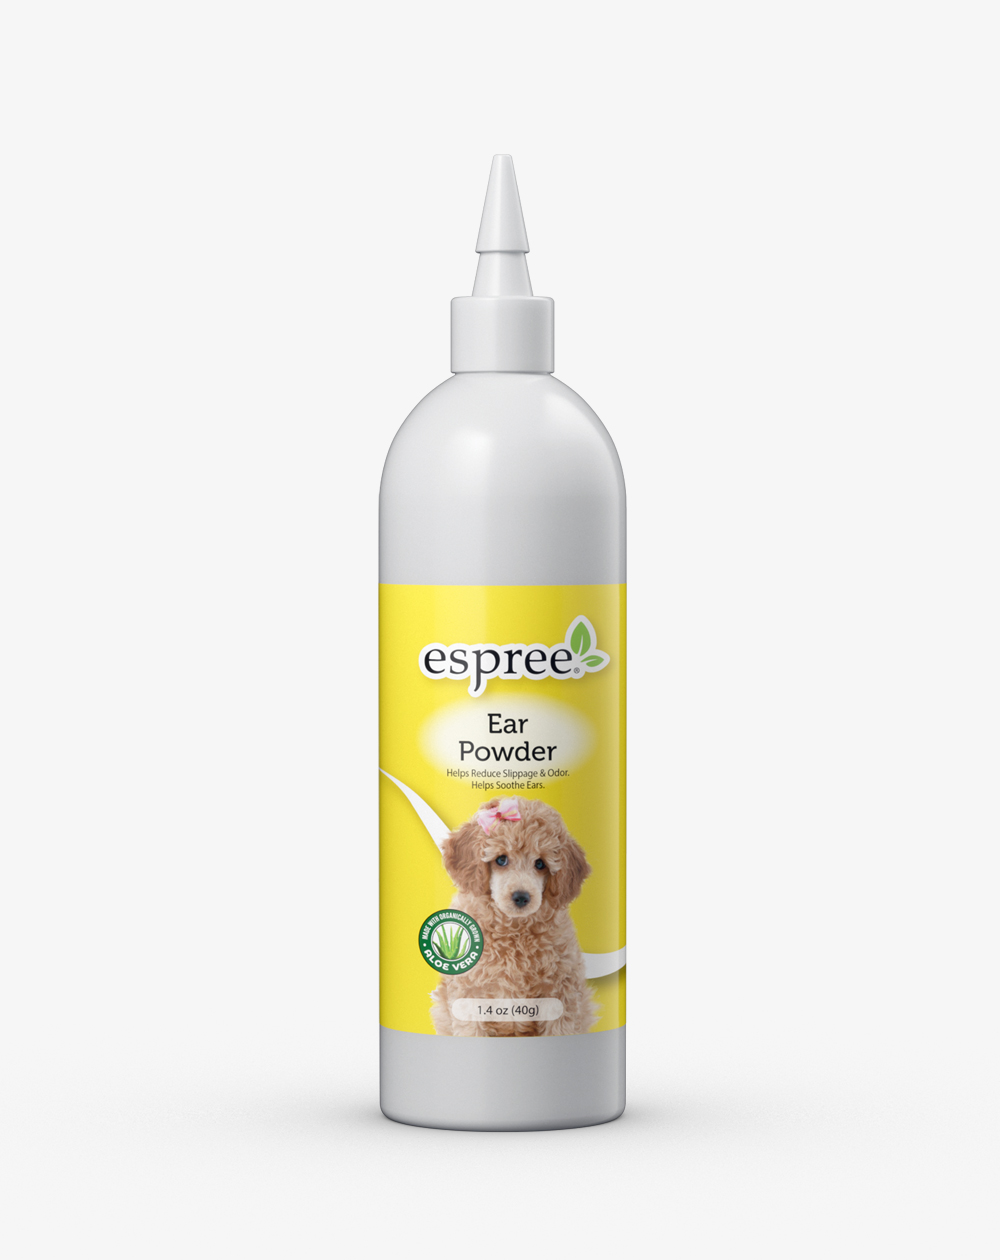 Espree Ear Powder for Dogs